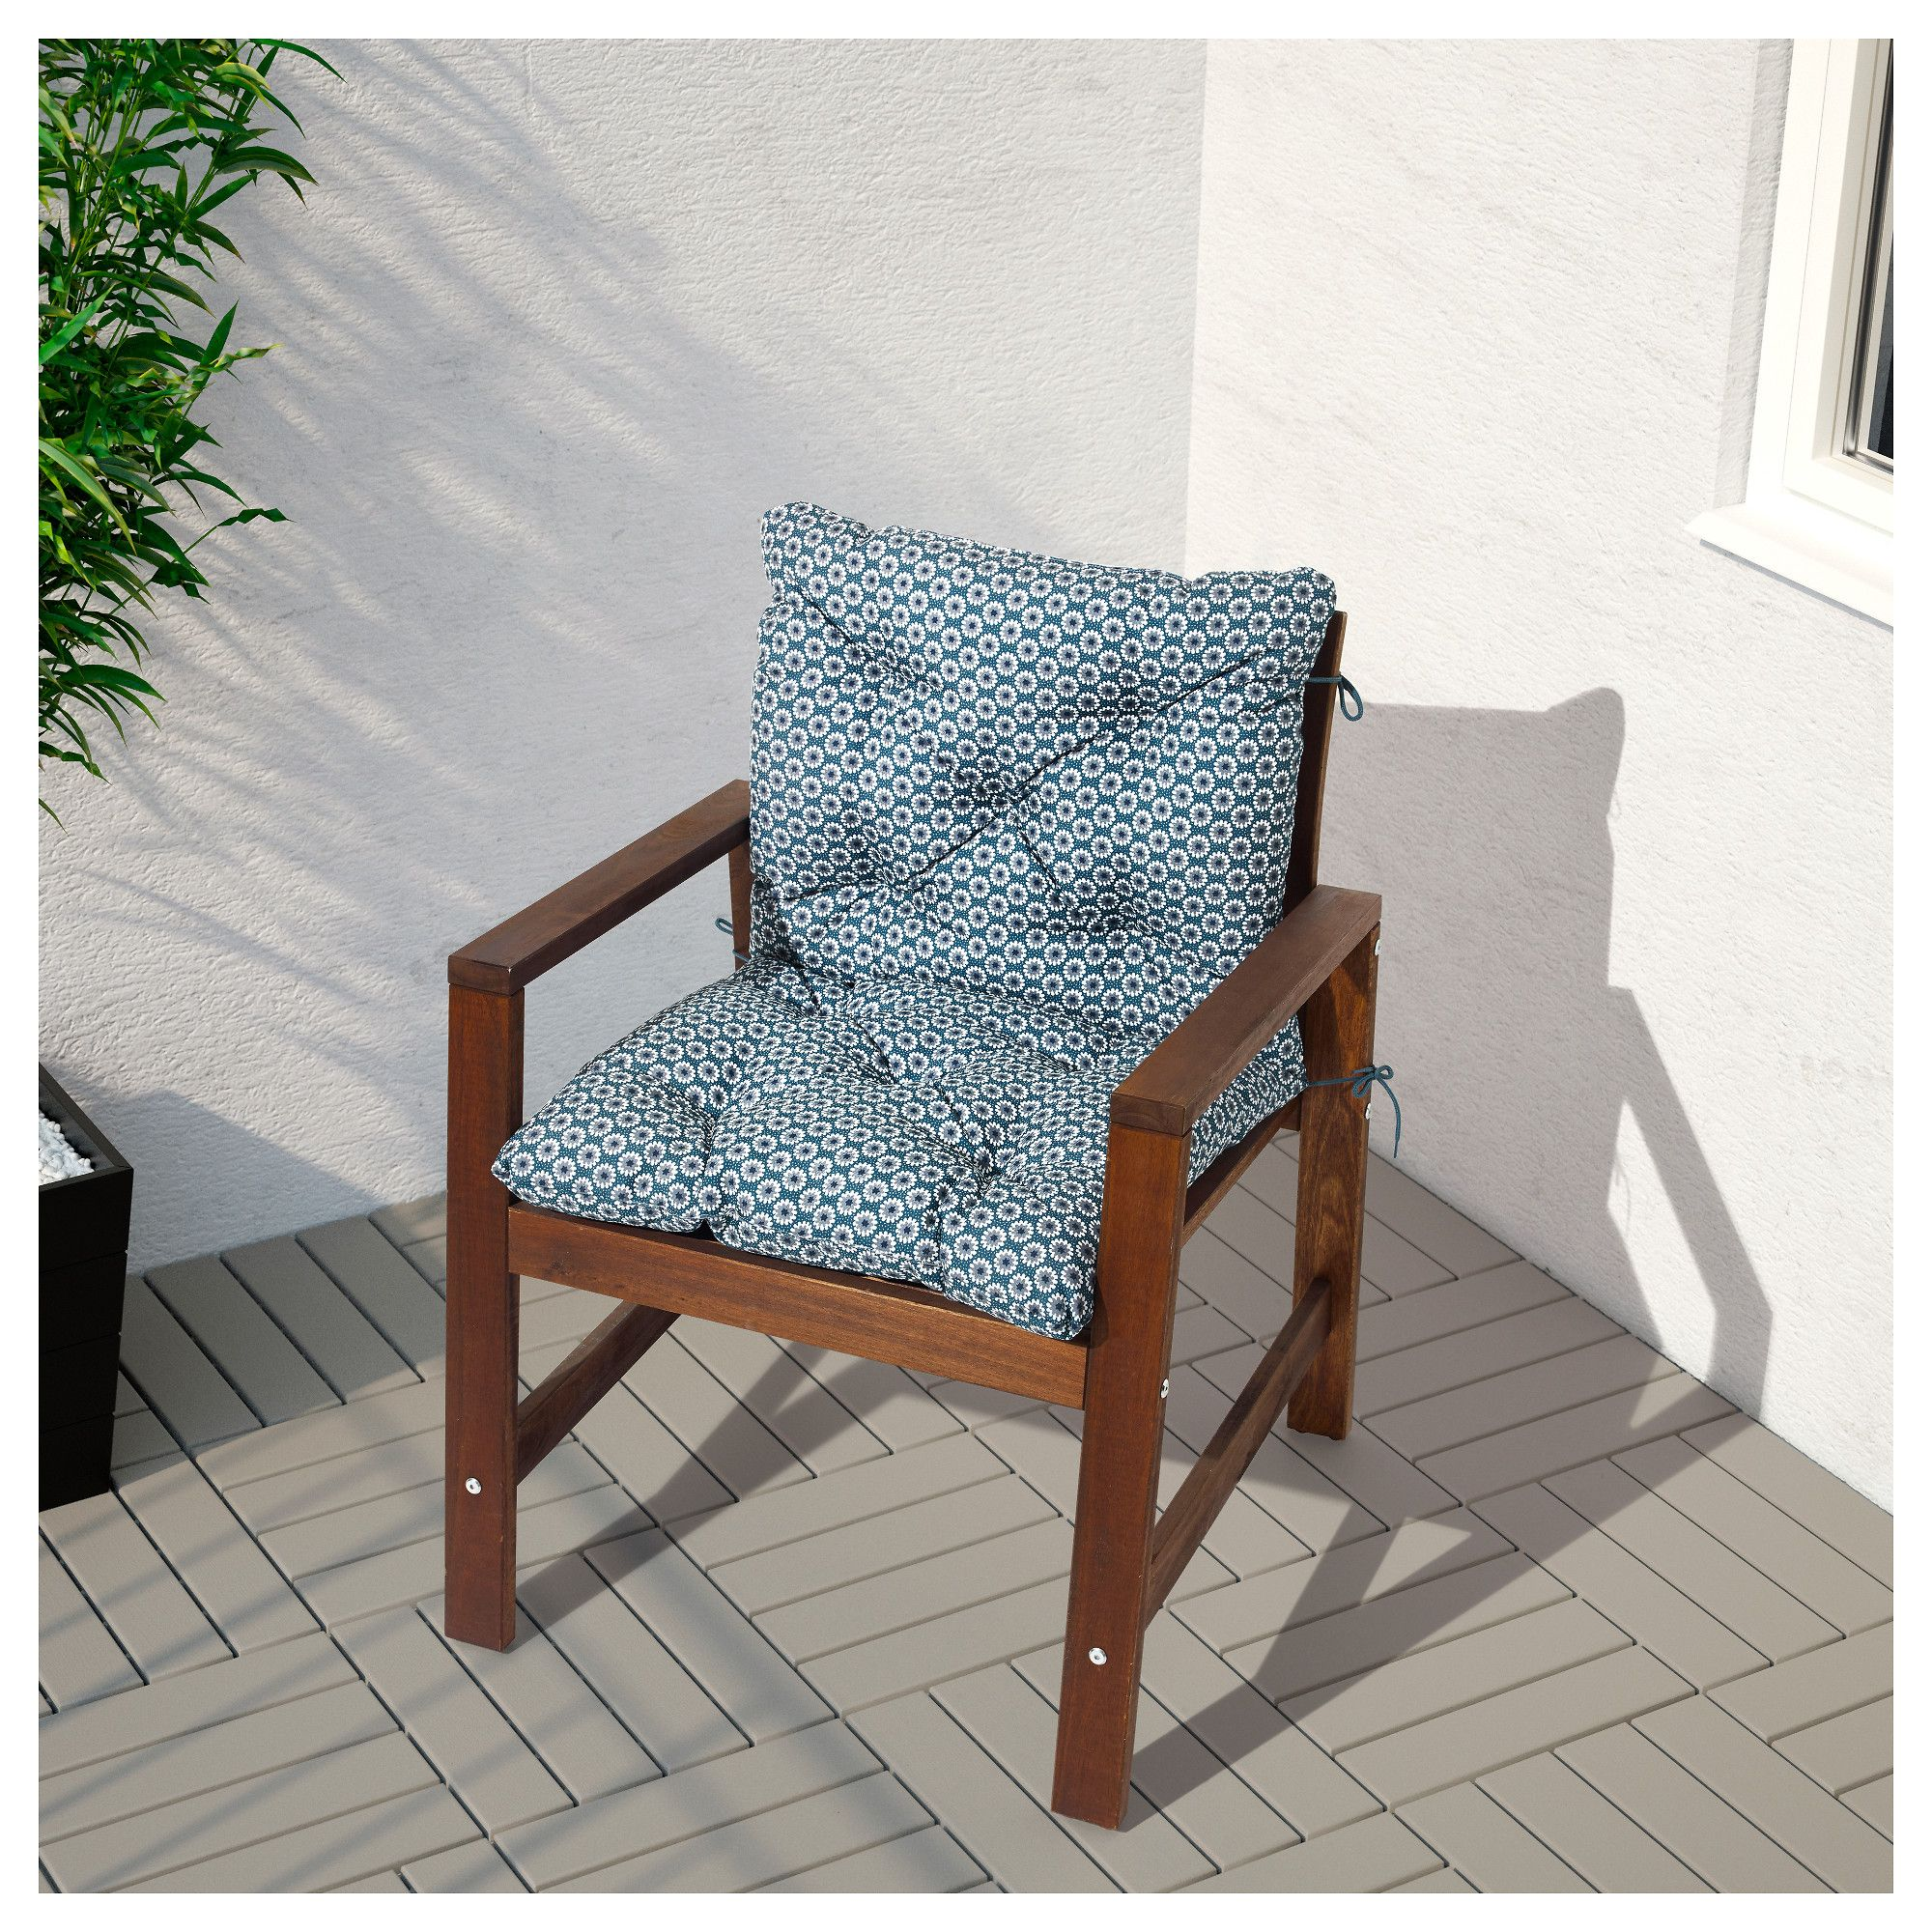 Applaro Armchair Outdoor Brown Stained Brown Coussin Assise Ikea Mobilier De Salon